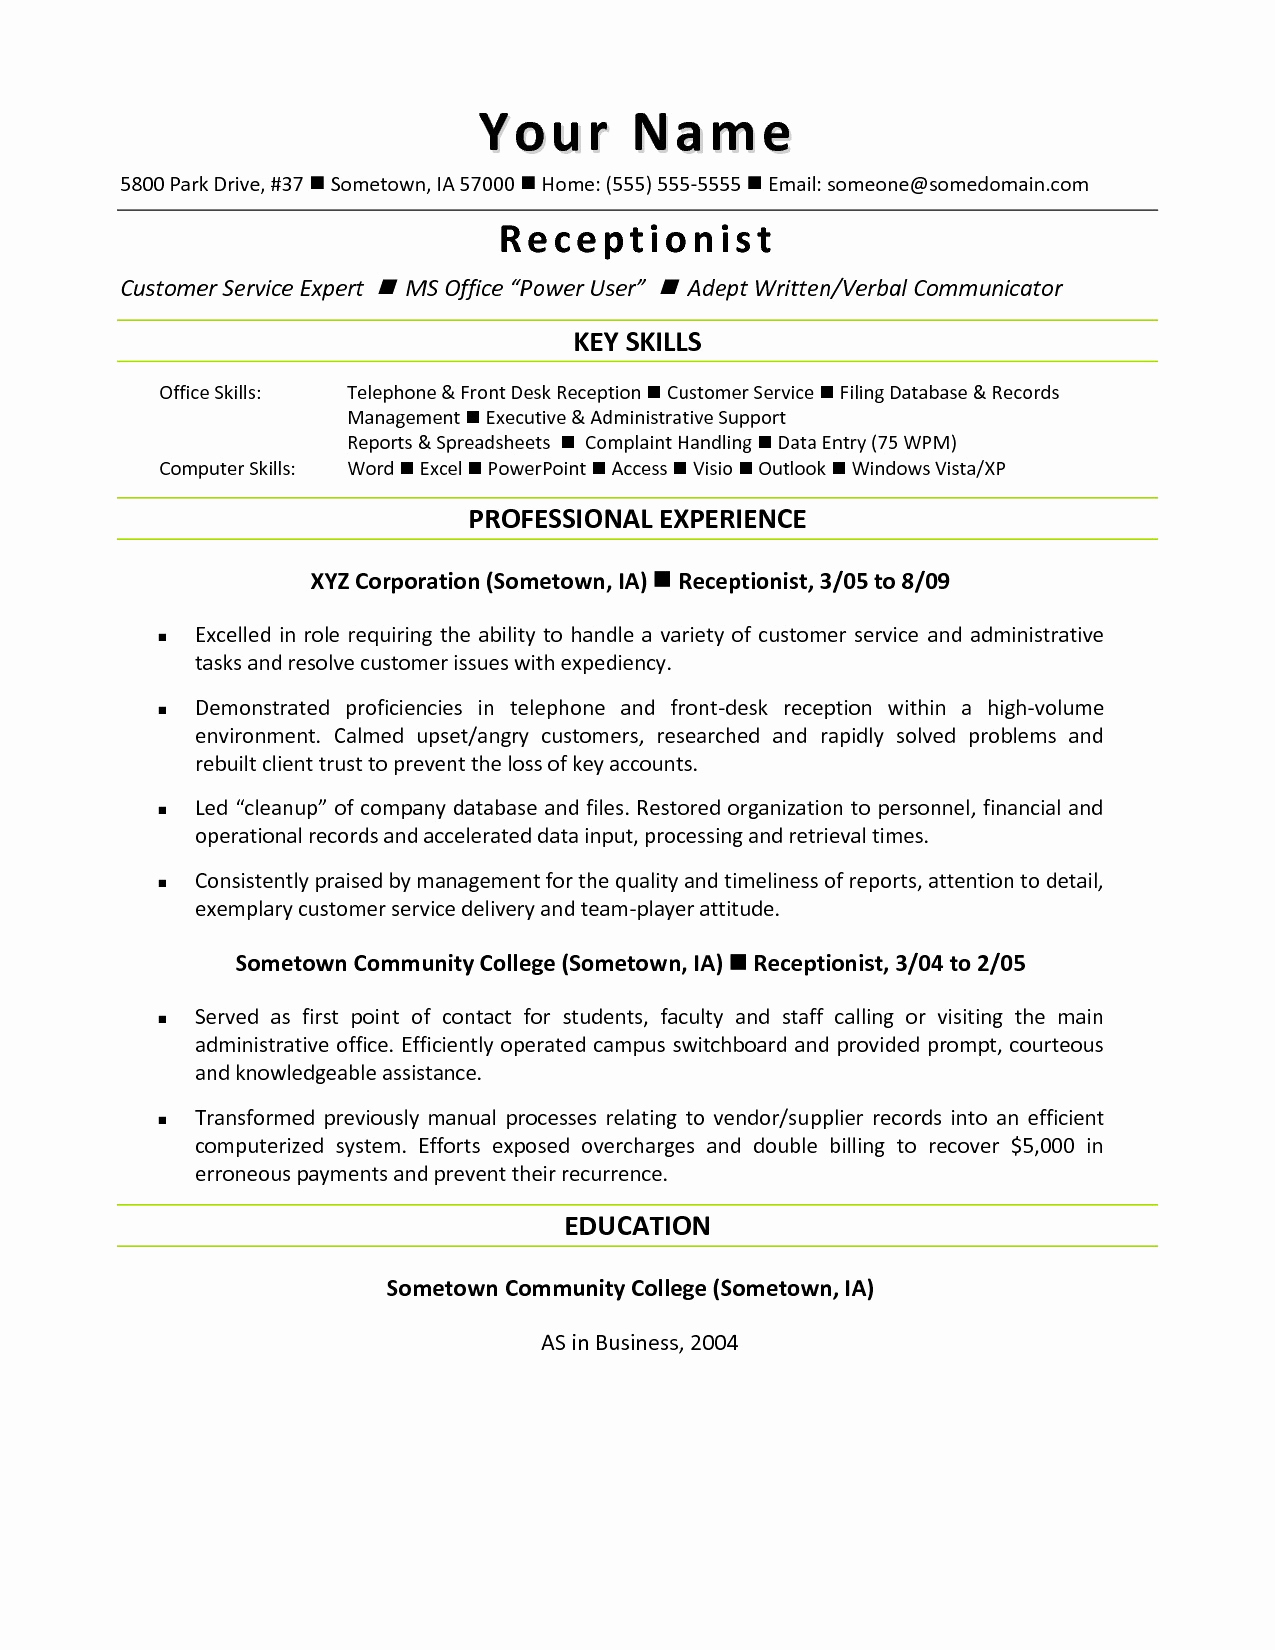 letter of agreement template free Collection-Letter Agreement Template Lovely Sample Cover Letter for Resume Pdf format Letter Agreement Template Awesome Free Resume 0d 11-a